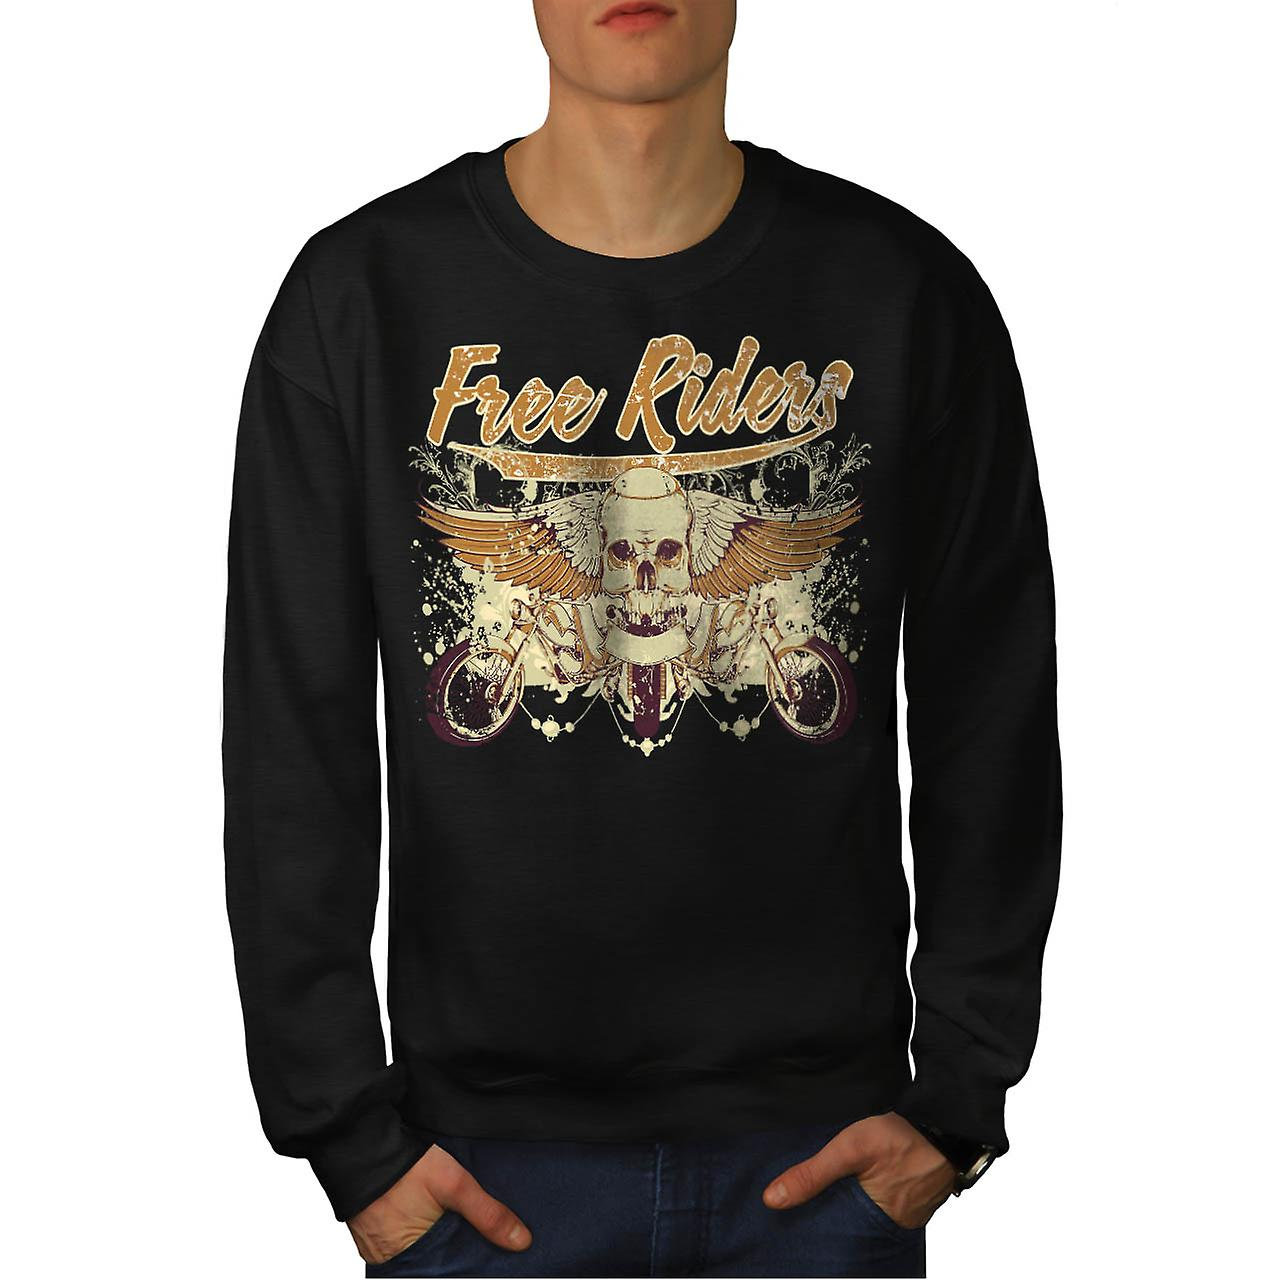 Free Riders Angel Biker Men Black Sweatshirt | Wellcoda